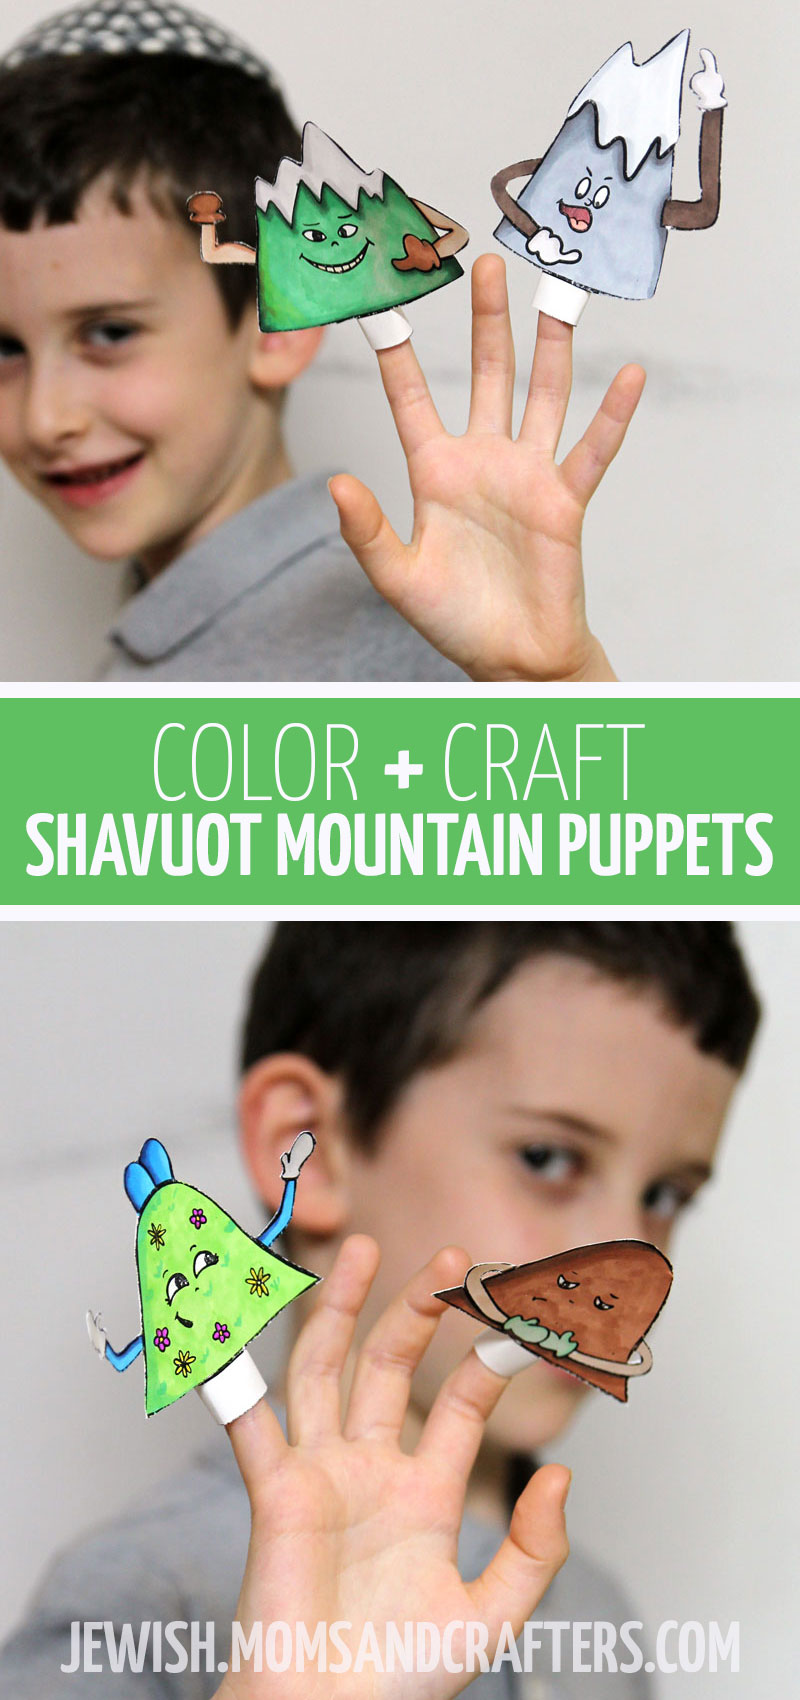 Click for a fun Shavuot puppets craft for kids to make for shavuos. This fun Jewish preschool activity and toddler craft is an easy free printable coloring page and music activity for the Jewish holidays.